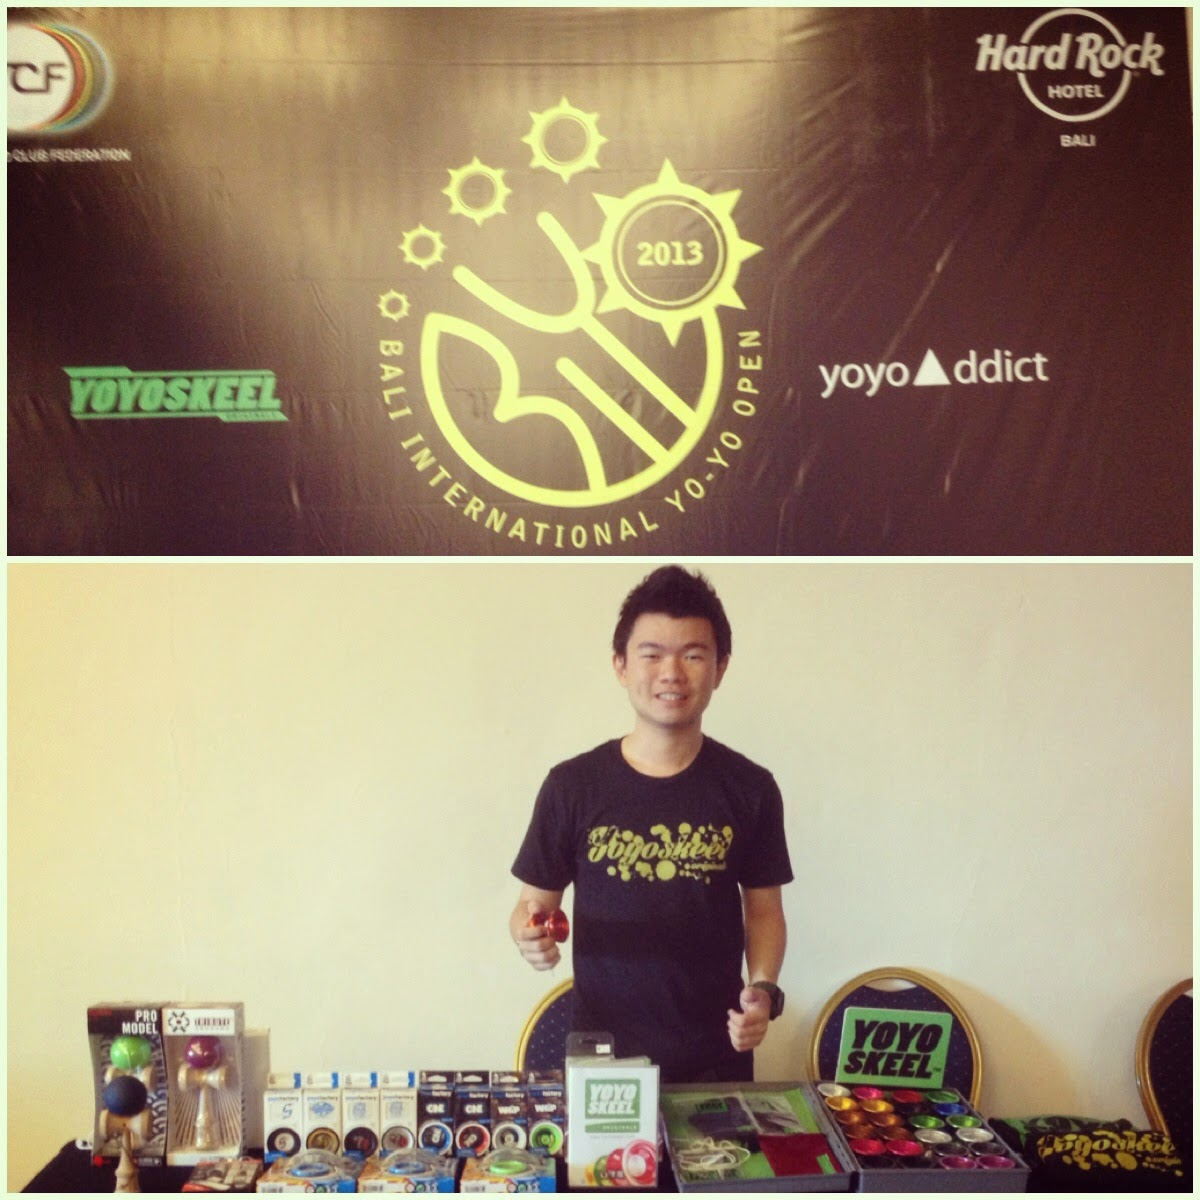 YOYOSKEEL POP UP BOOTH IN HARD ROCK HOTEL BALI BIYO 2013